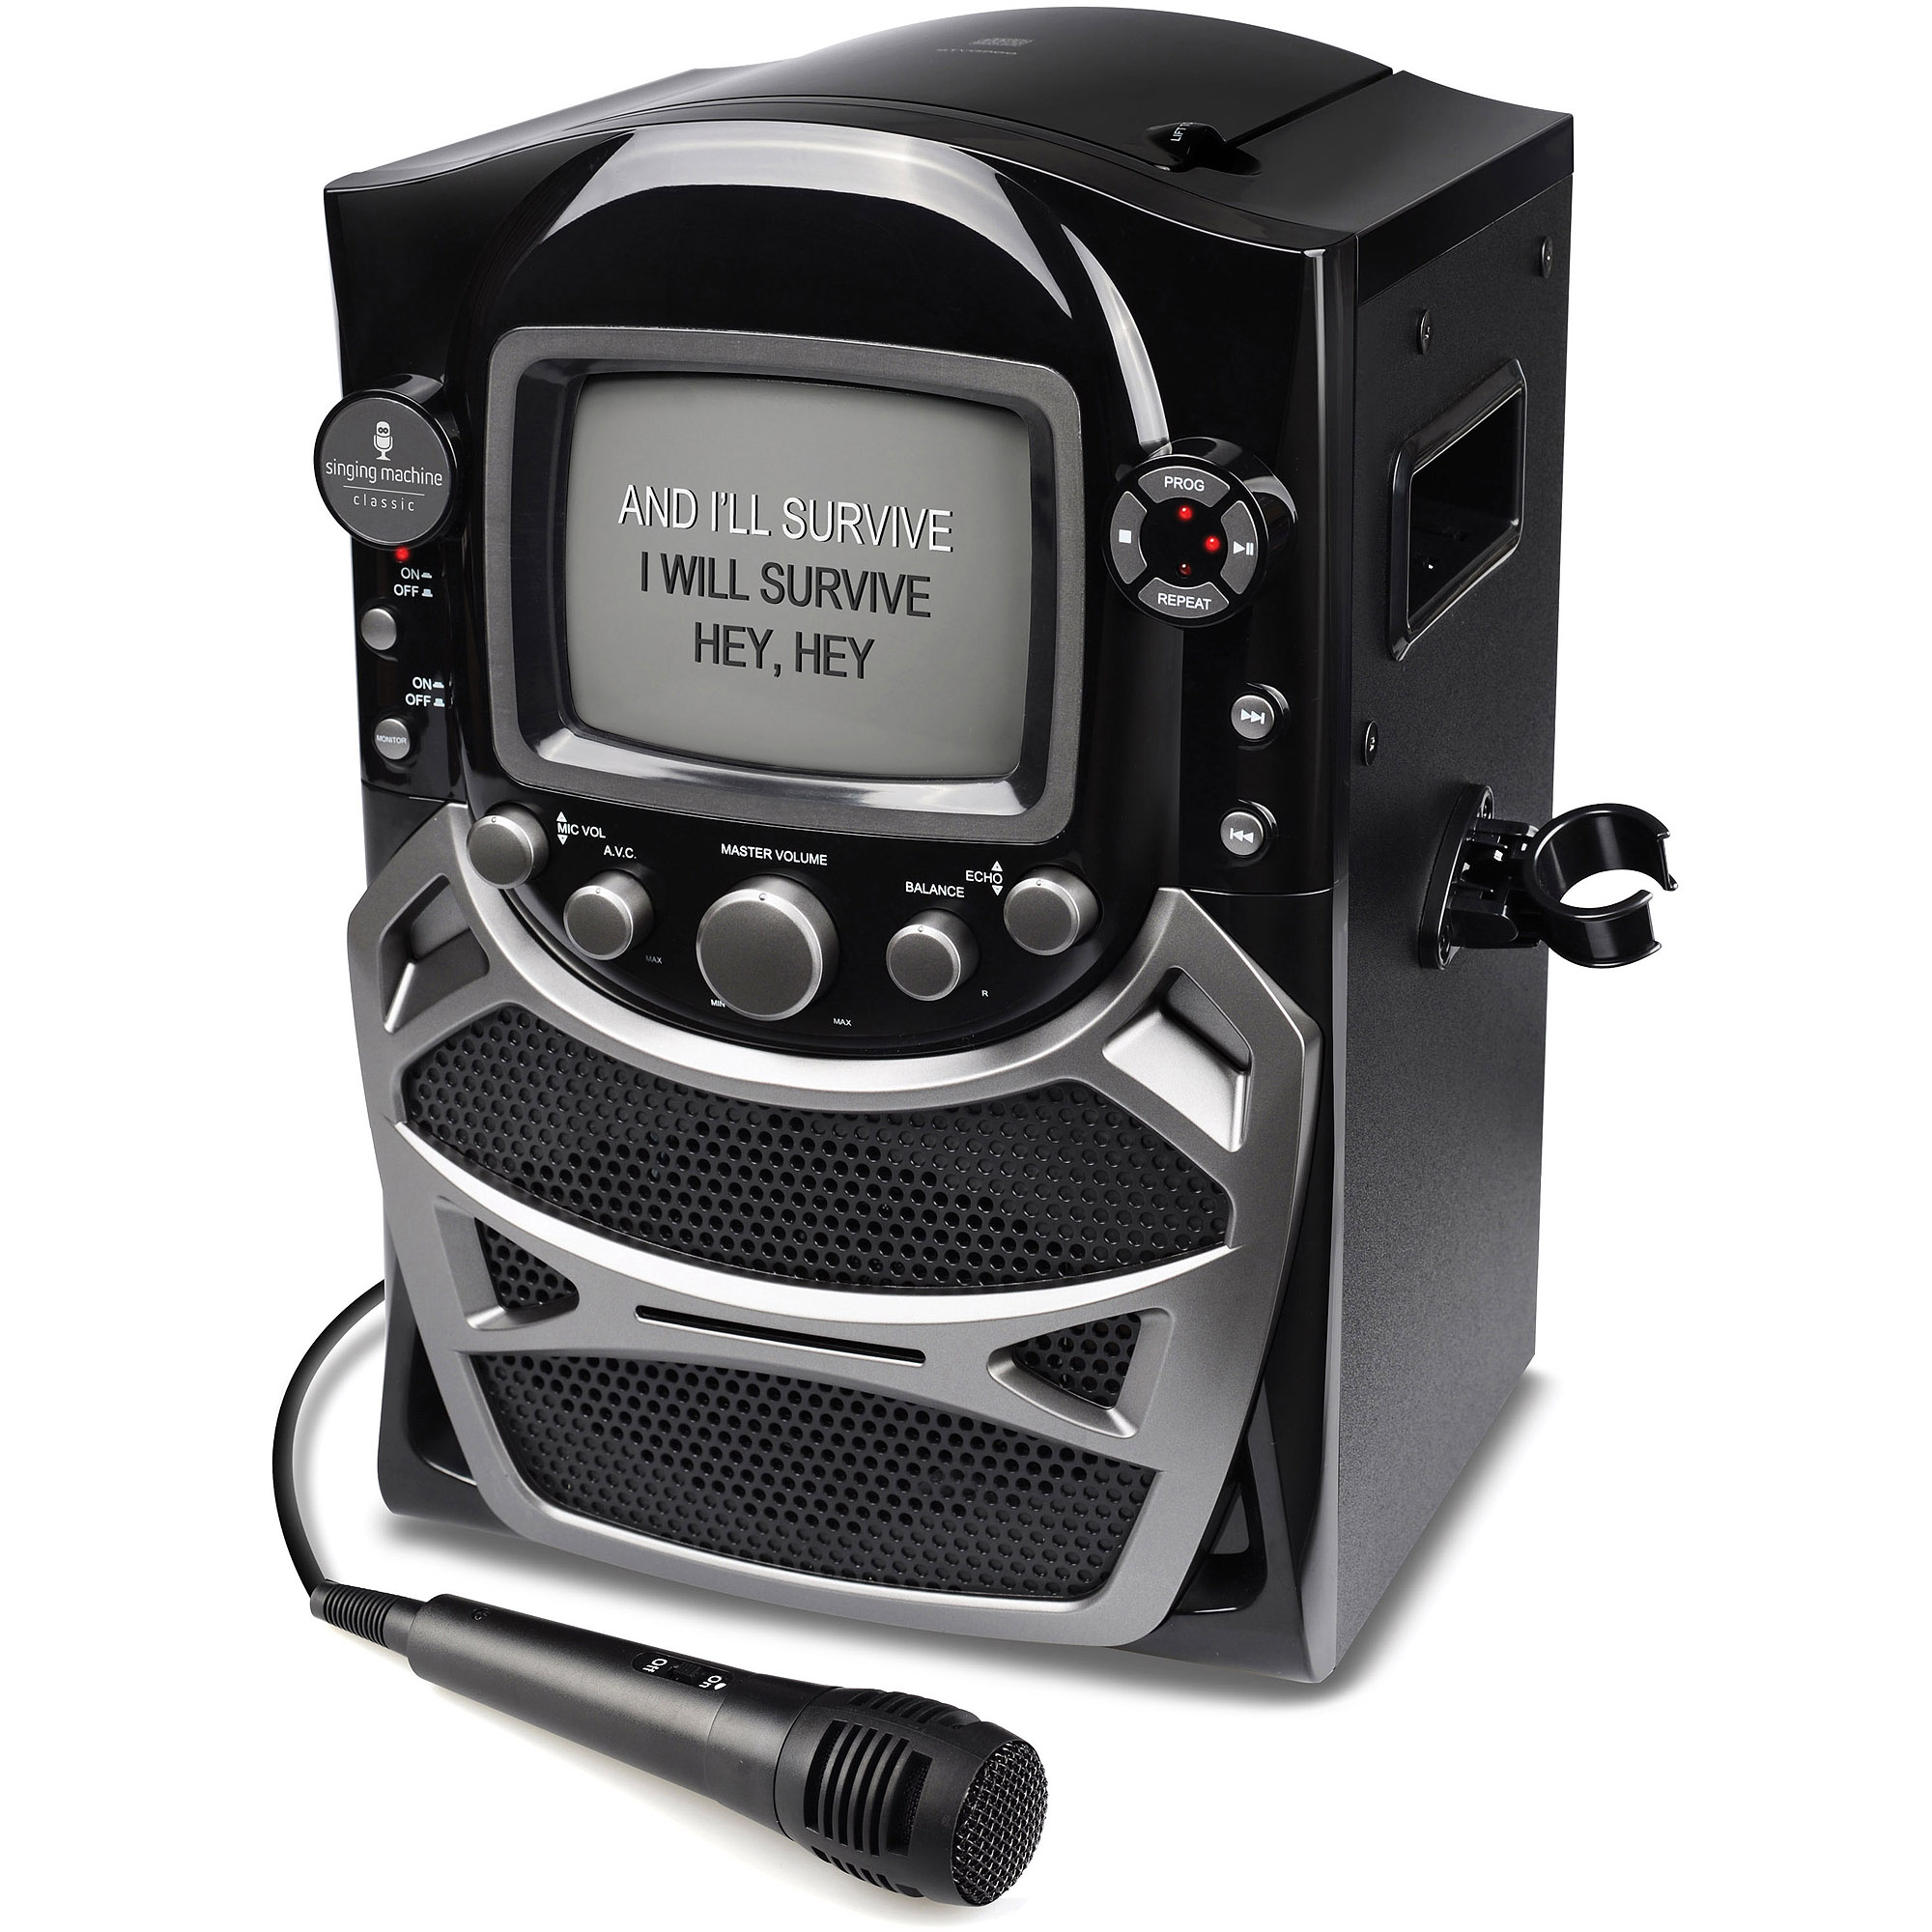 """Singing Machine CD+G Karaoke System with Built-in 5.5"""" B&W CRT Monitor and Microphone"""